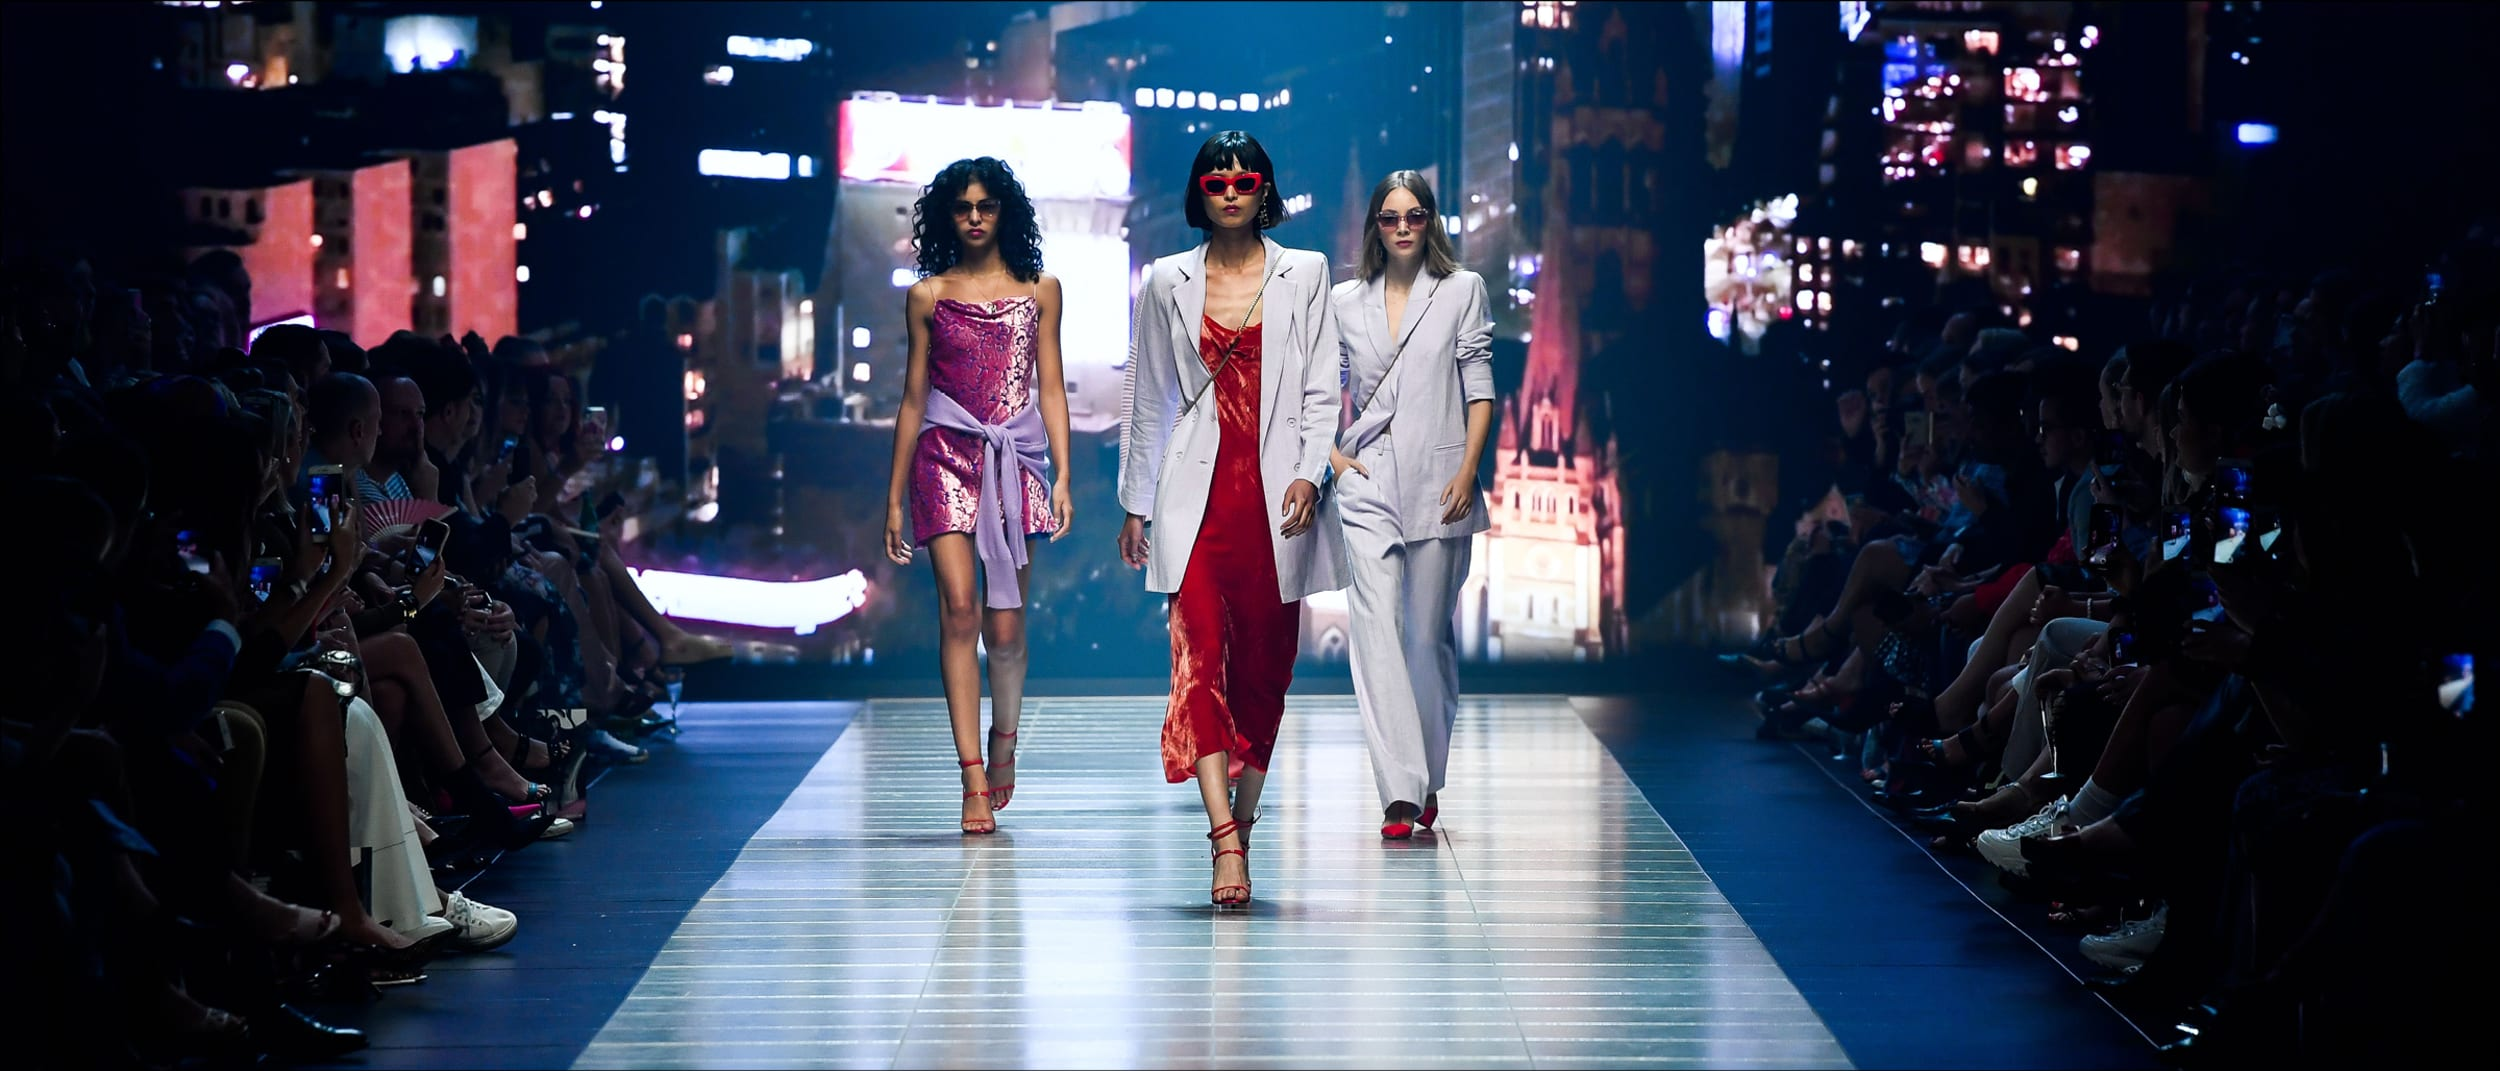 Street style: our favourite trends from VAMFF 2019